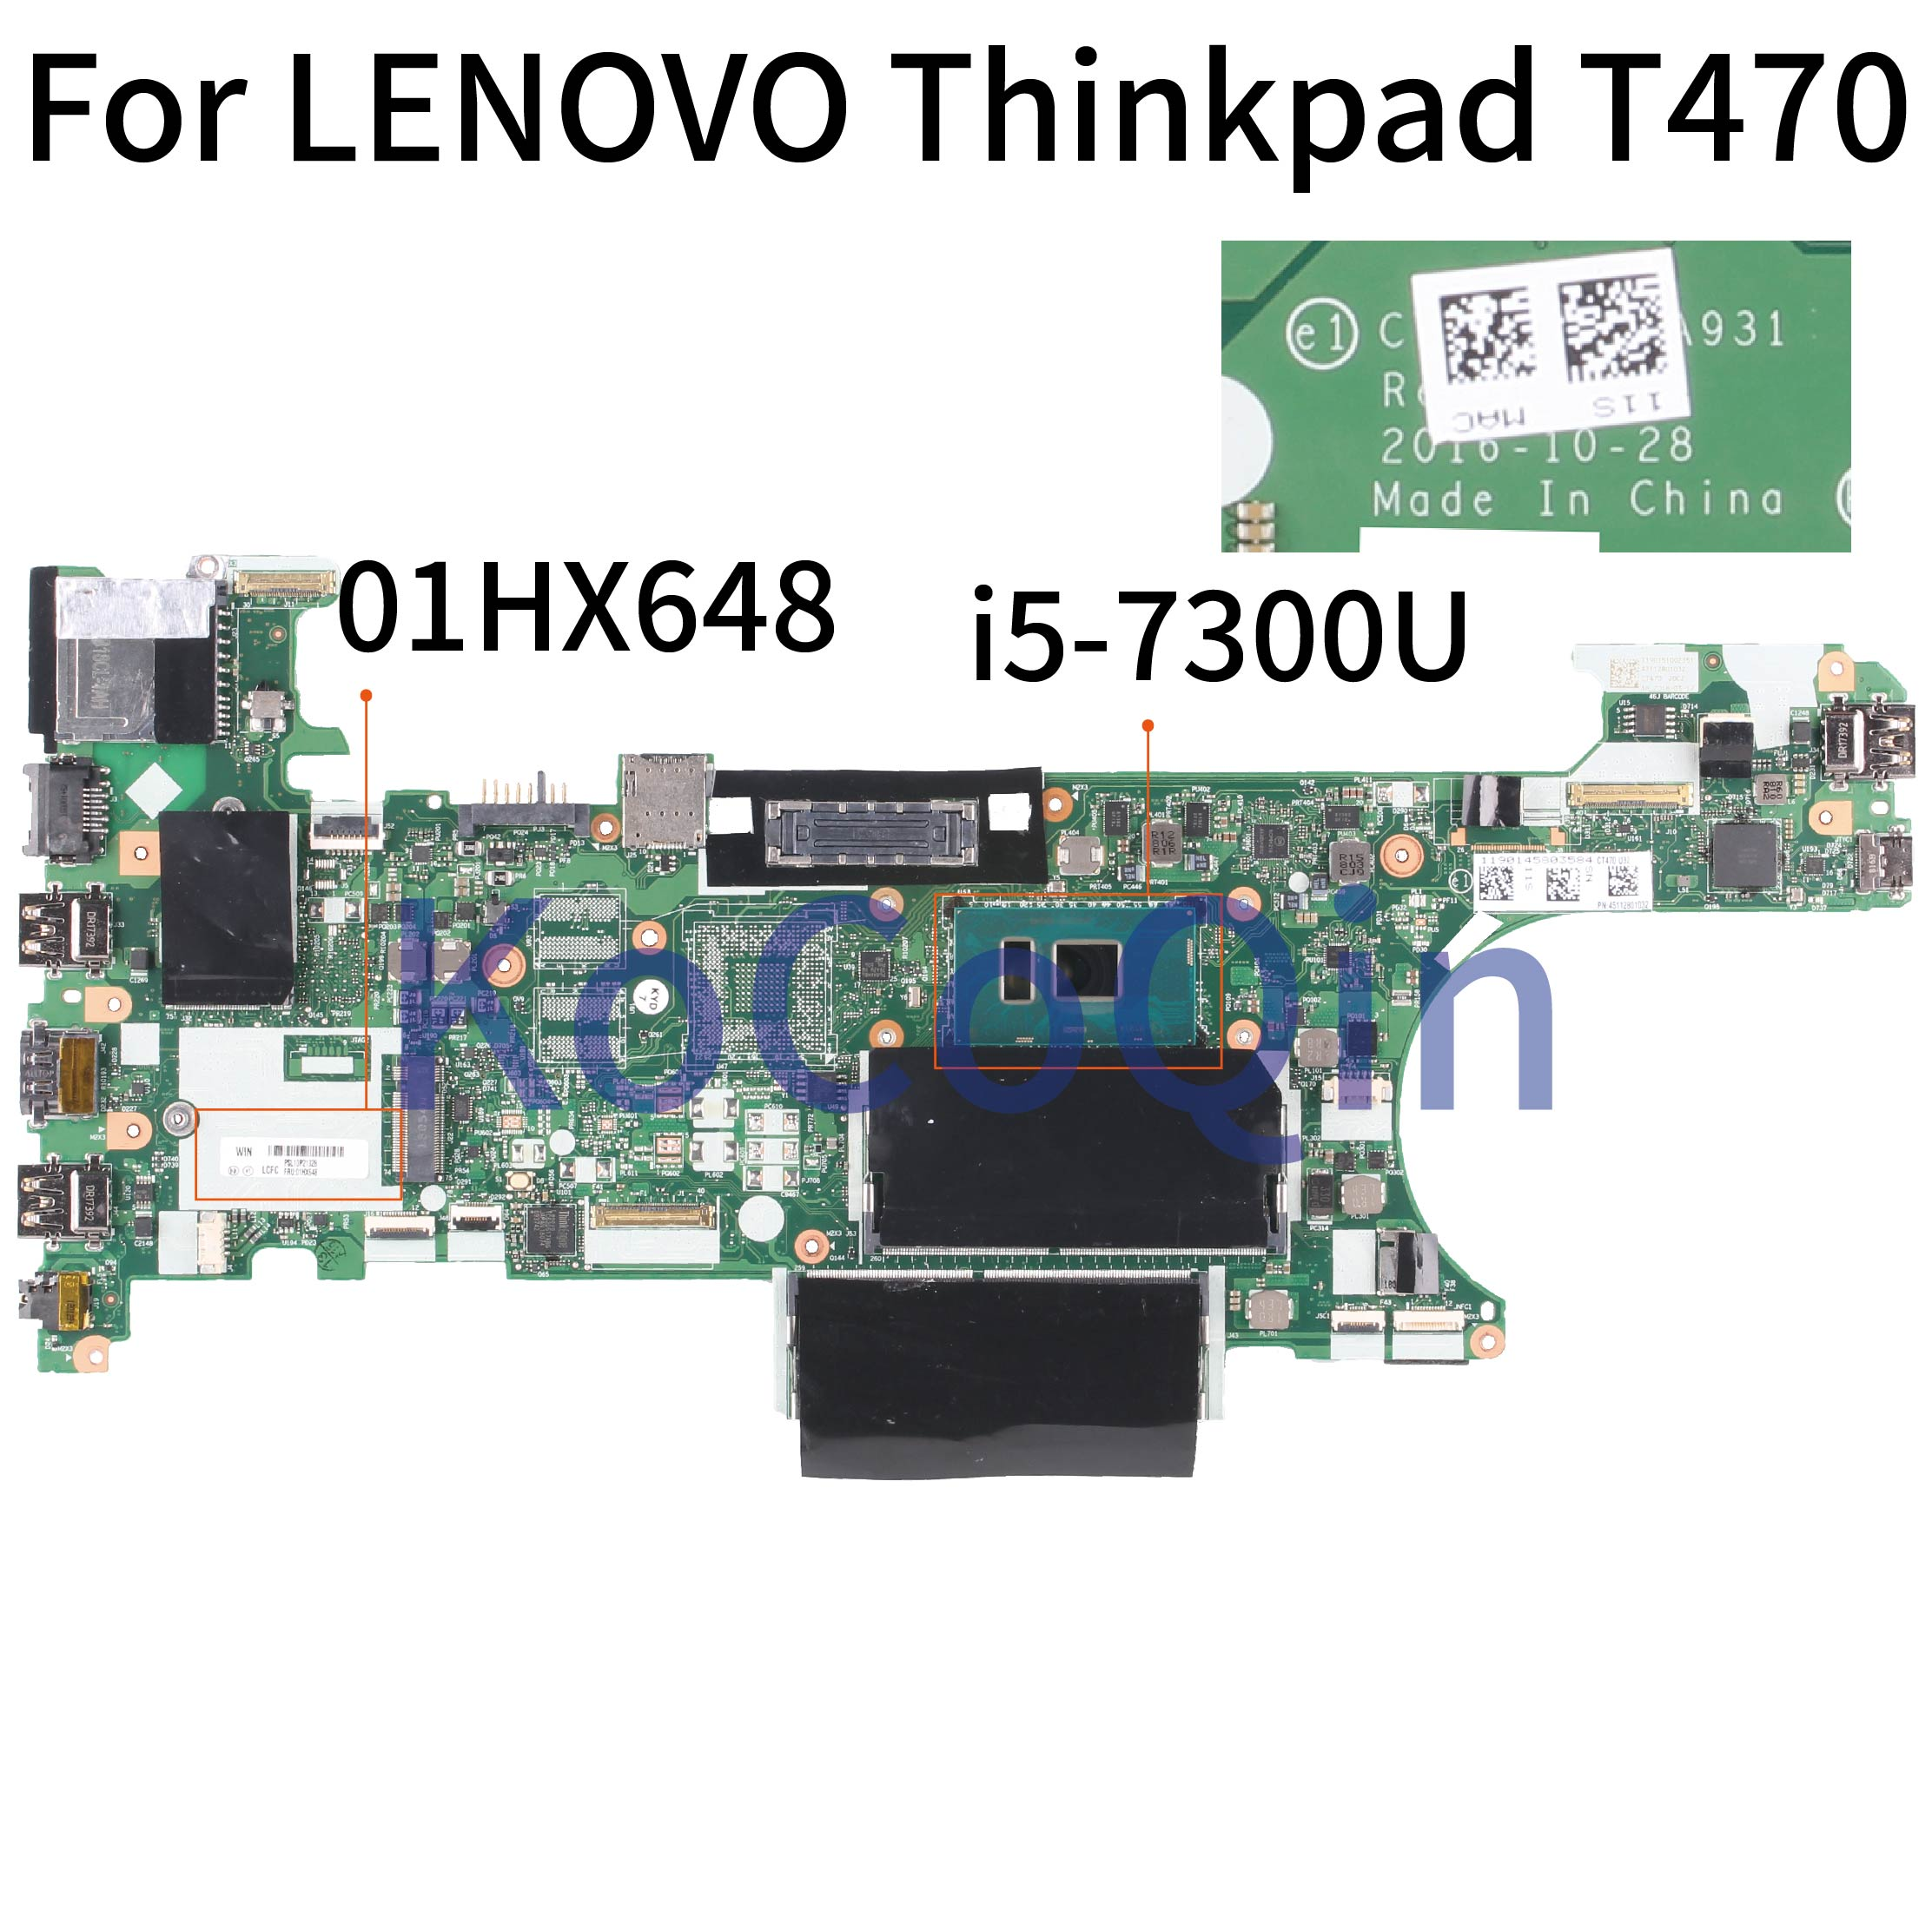 KoCoQin Laptop Motherboard For LENOVO Thinkpad T470 Core SR340 I5-7300U Mainboard 01HX648 NM-A931 Tested 100%